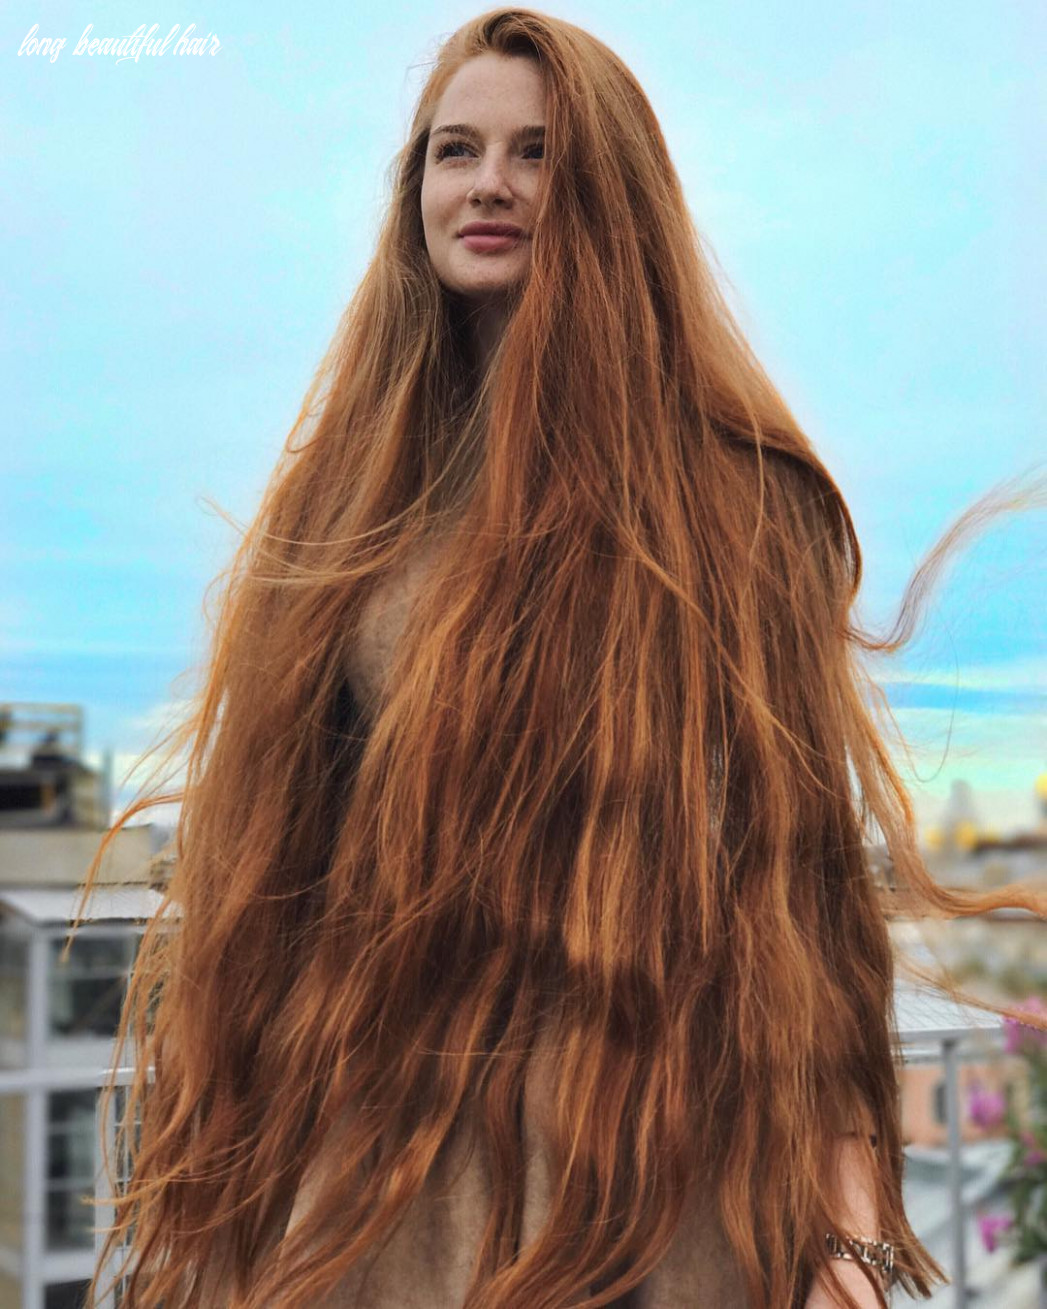 Russian Woman Who Suffered From Alopecia Now Has Beautiful Long Hair